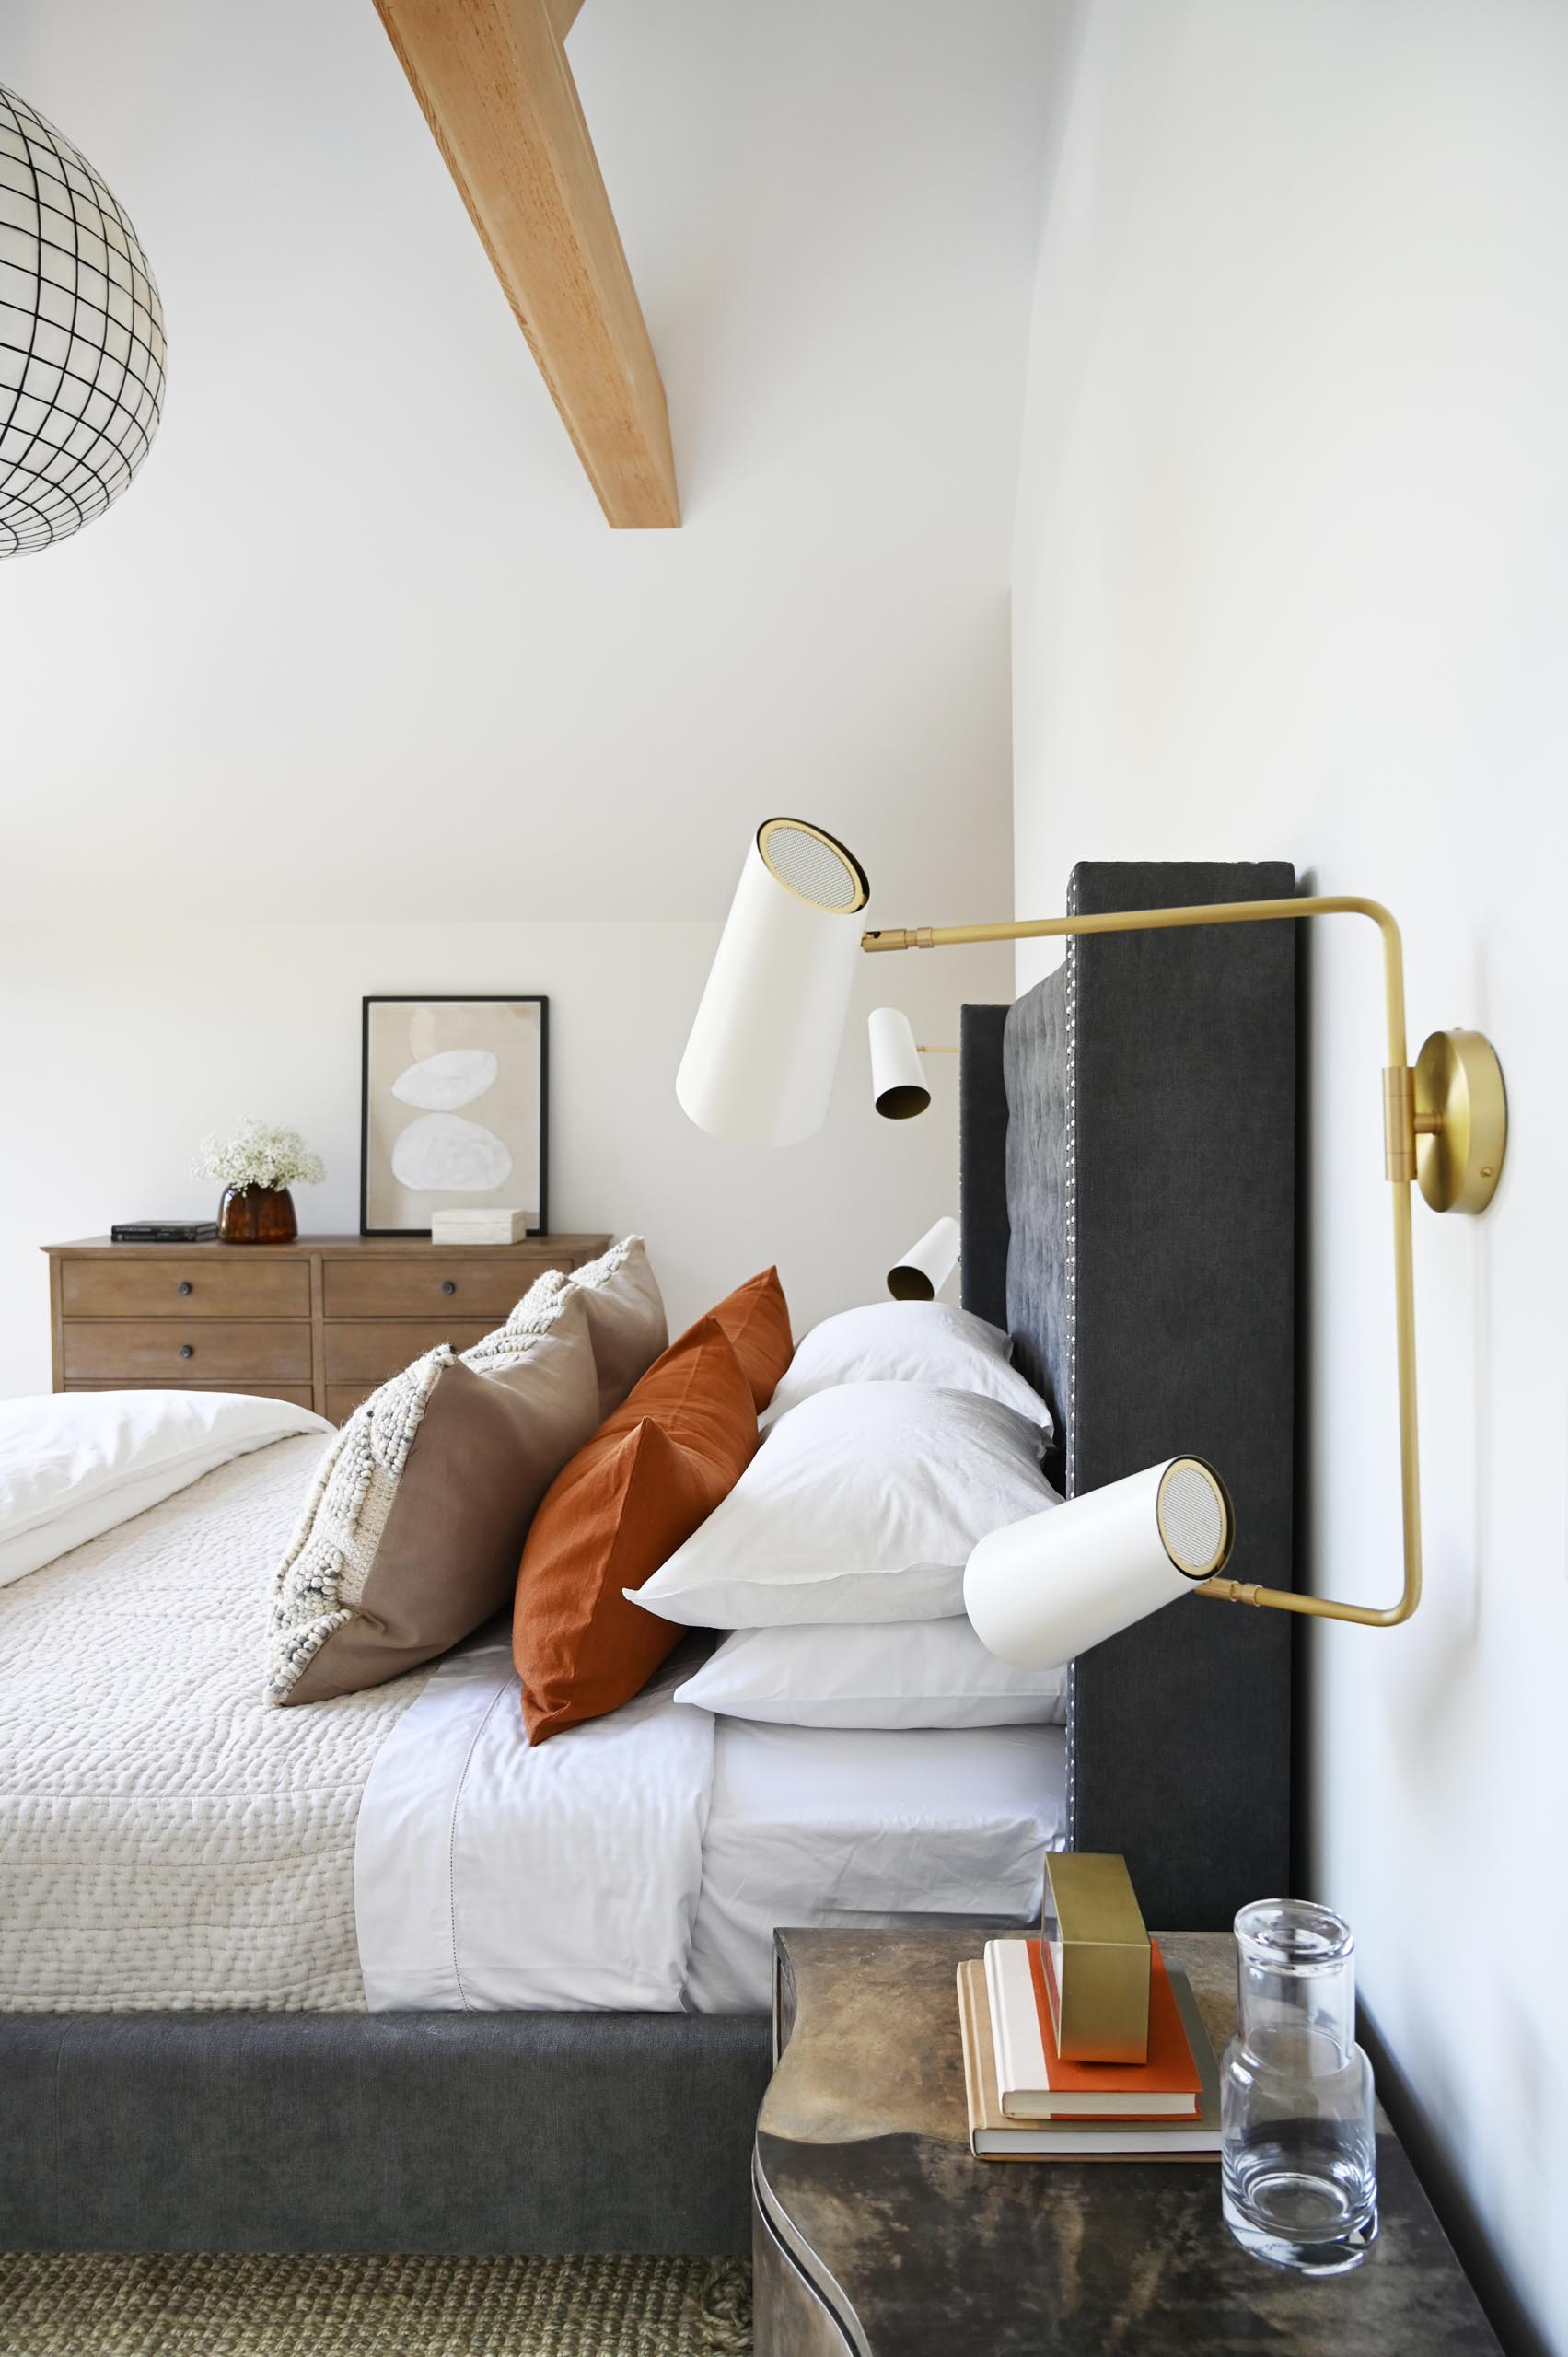 Featuring a cathedral ceiling with exposed beams and layers of neutral soft textures and furnishings, this primary bedroom is designed as a cozy nest overlooking the lush green yard.